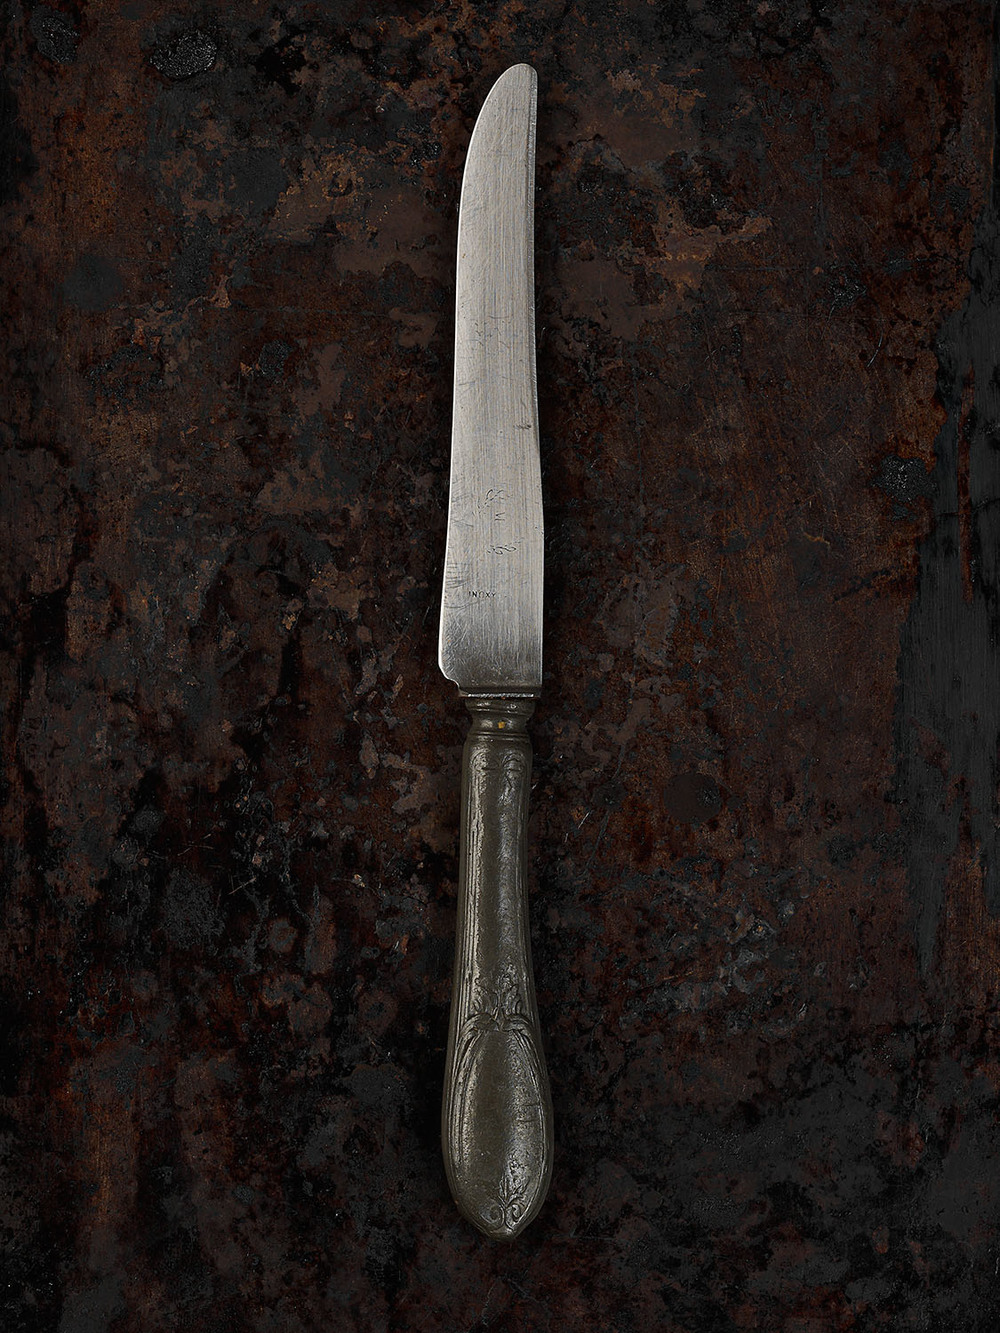 #51 Pewter Handle Knife